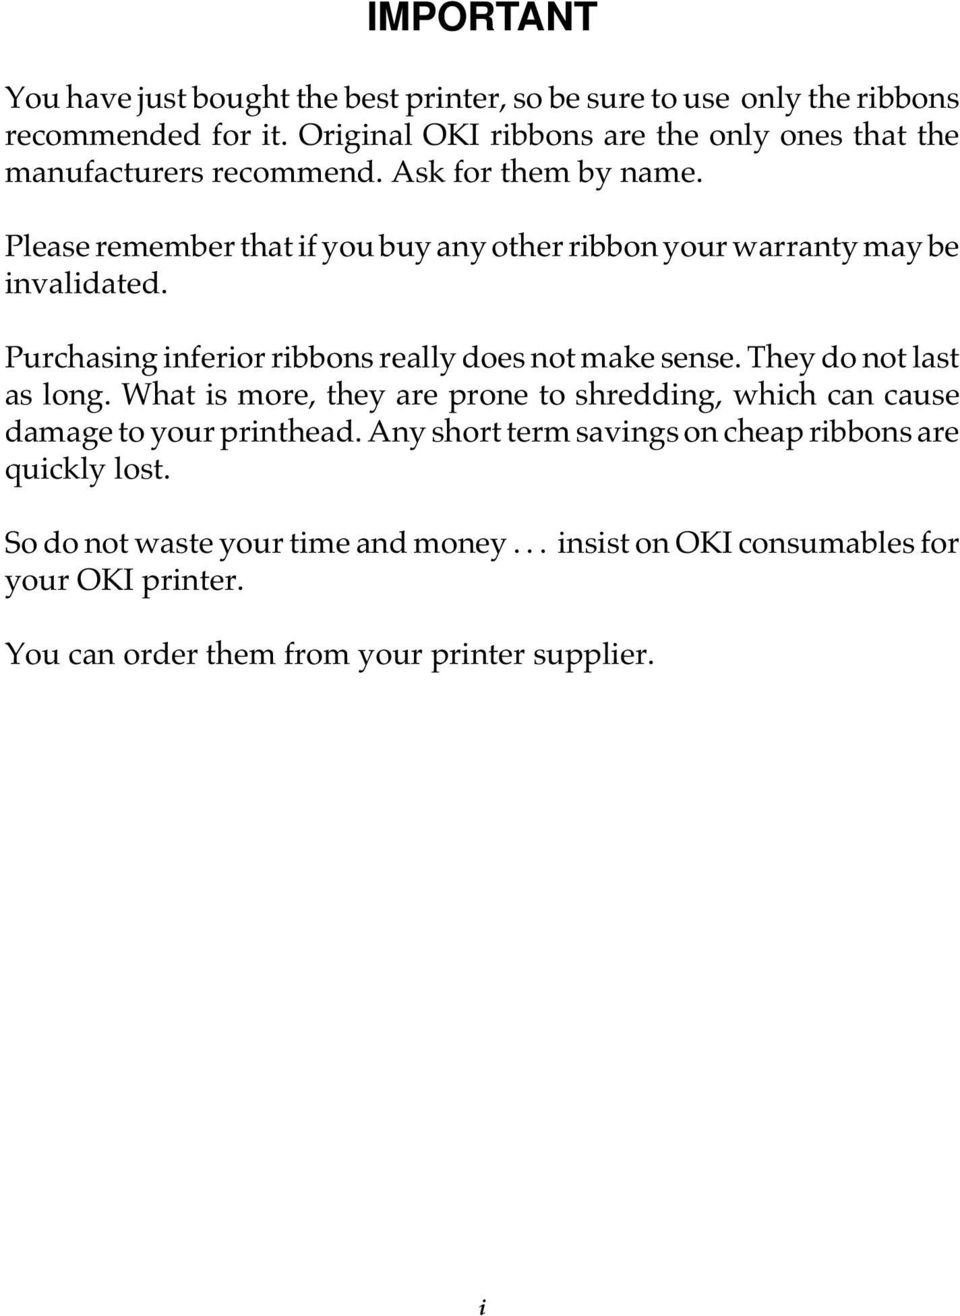 Please remember that if you buy any other ribbon your warranty may be invalidated. Purchasing inferior ribbons really does not make sense.